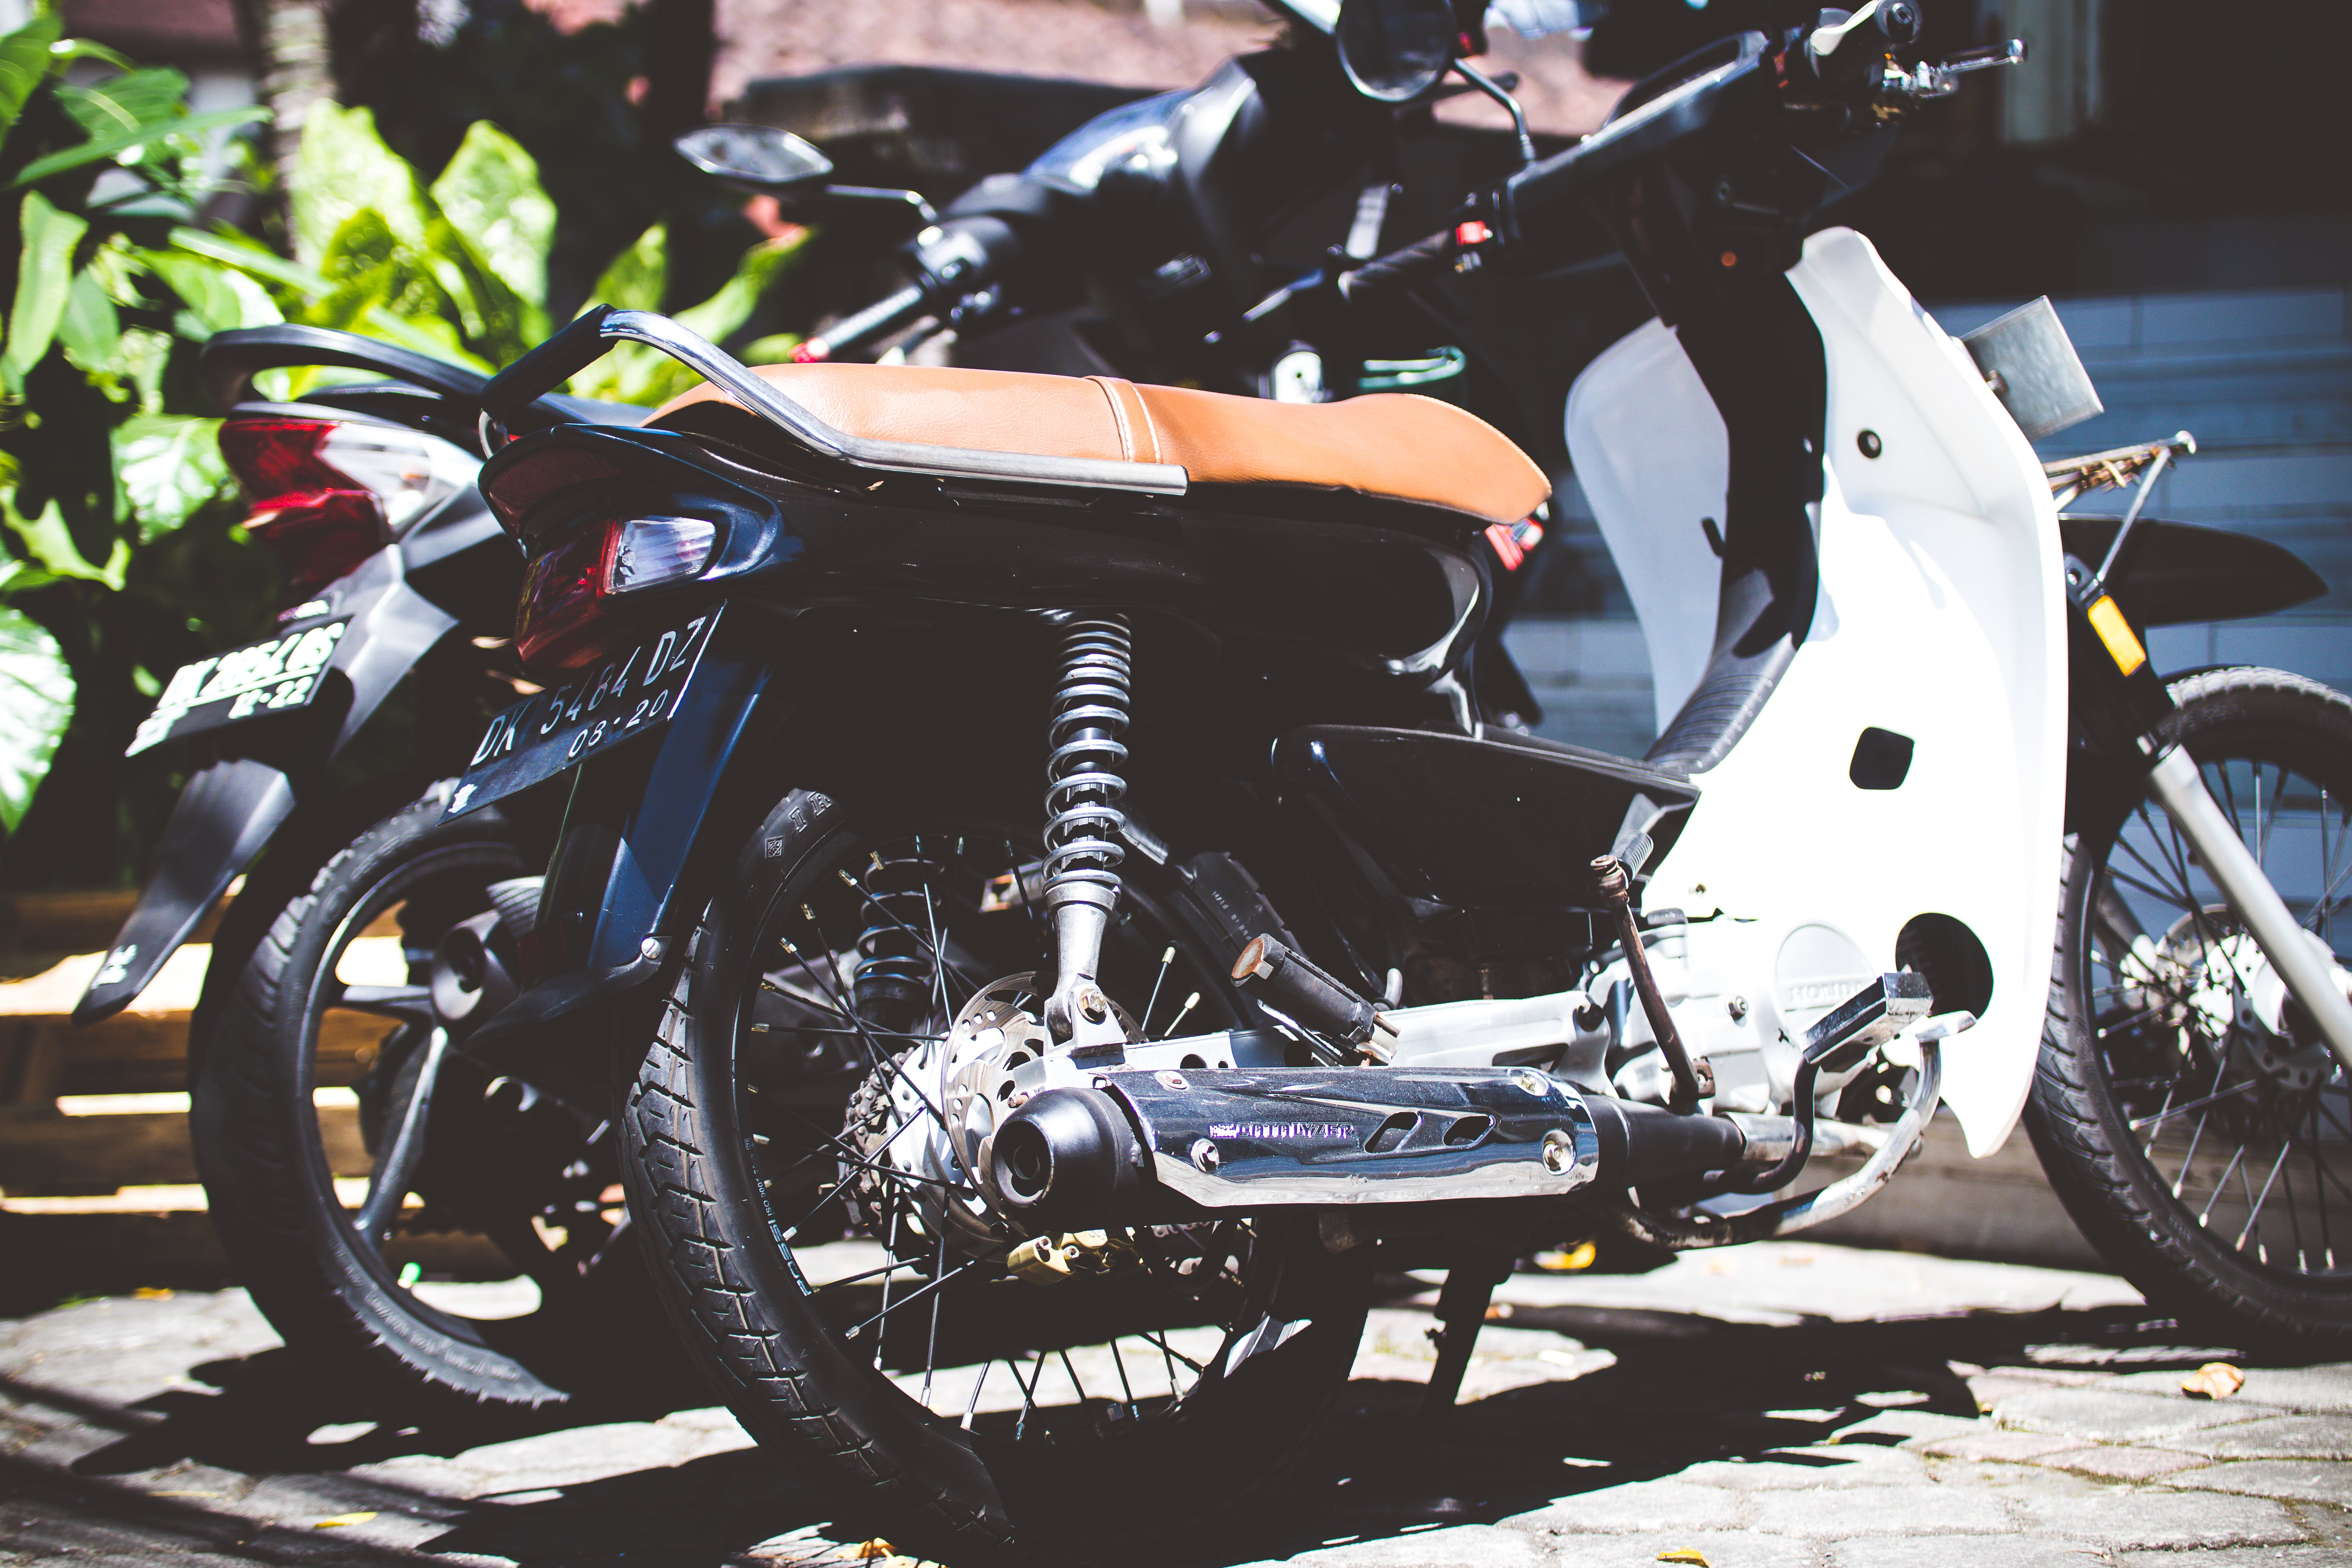 White Underbone Motorcycle Parked Beside a Motorcycle